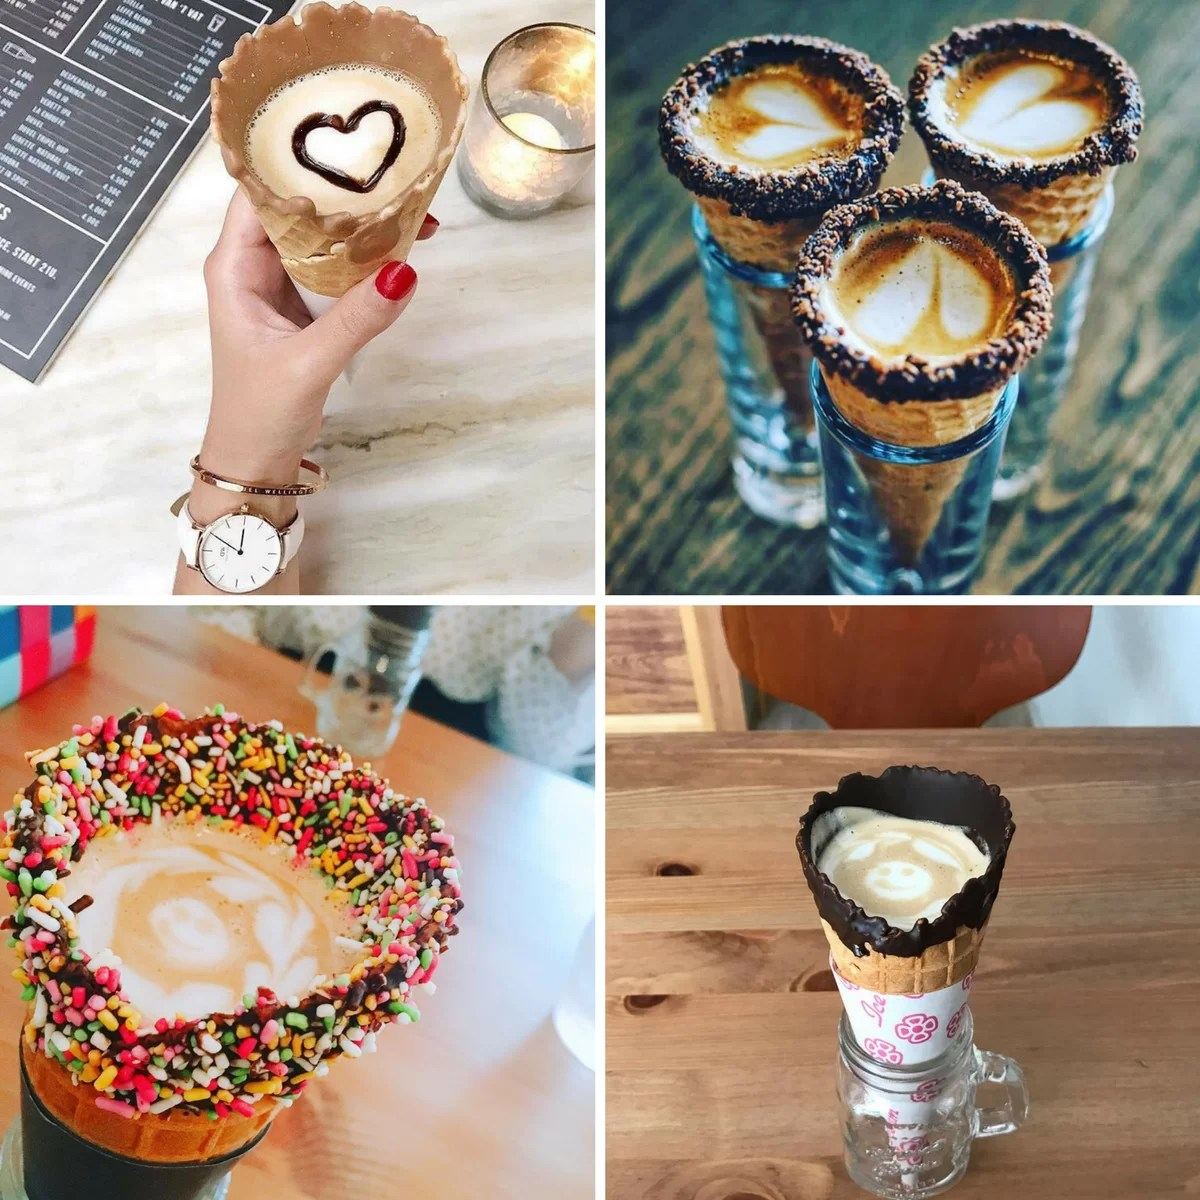 coffee cone tendenza caffè 2017